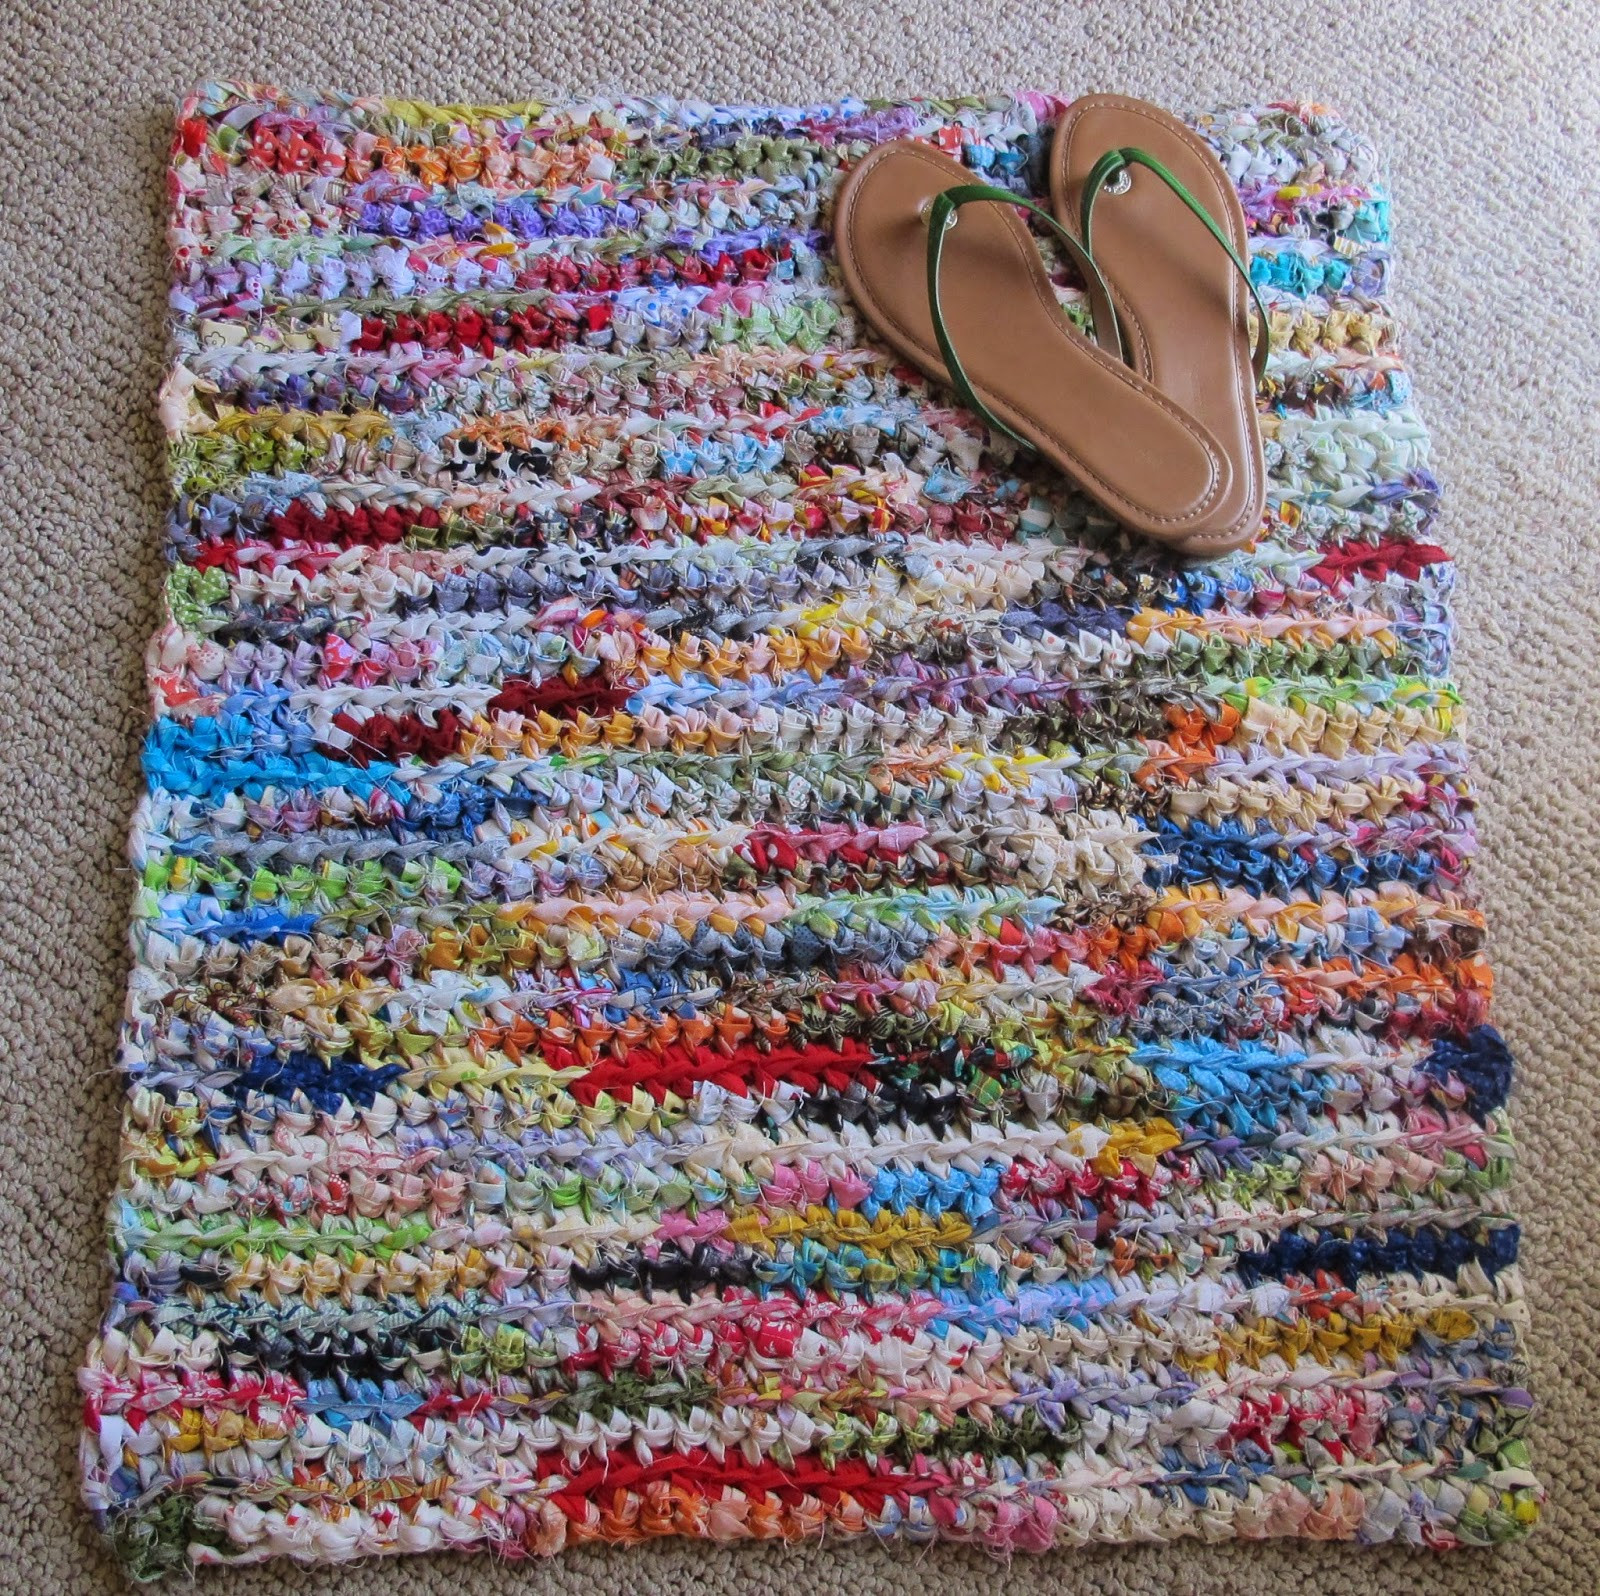 Crochet Rugs Luxury Rag Crochet is Upcycling for Hookers Of Adorable 43 Models Crochet Rugs